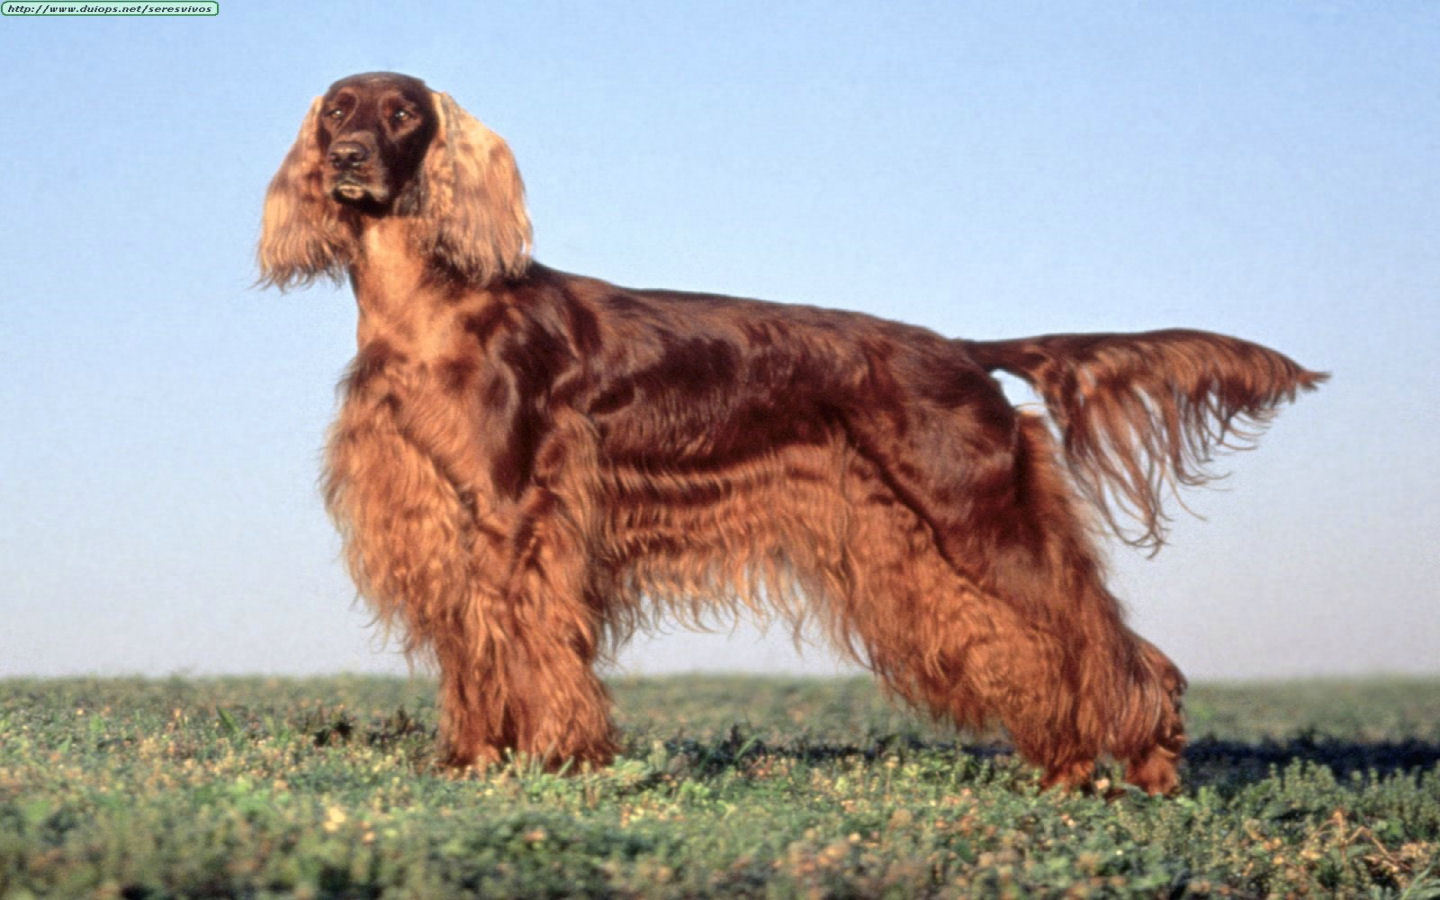 Irish Setter Backgrounds, Compatible - PC, Mobile, Gadgets| 1440x900 px